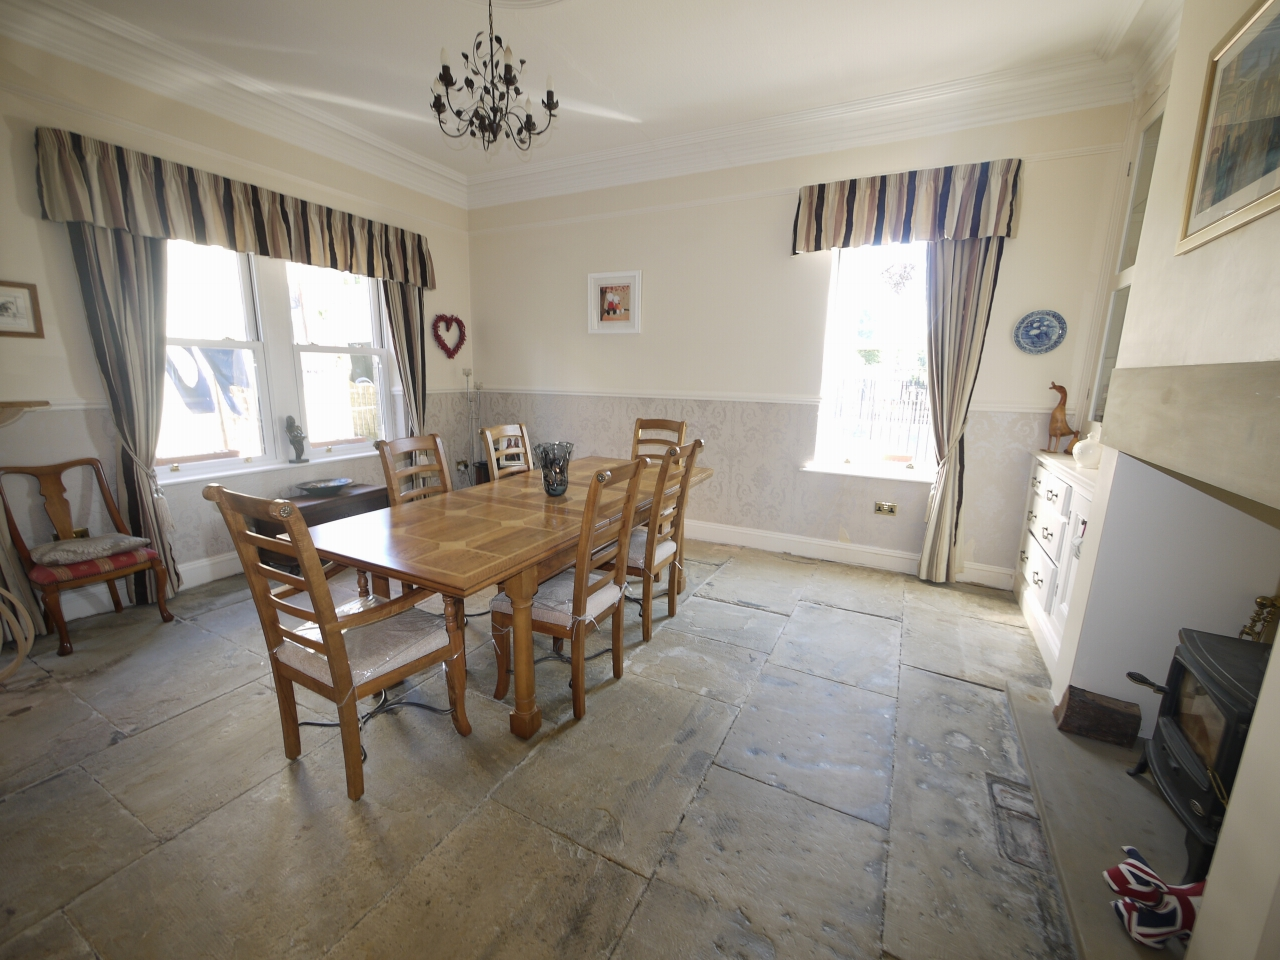 5 bedroom semi-detached house For Sale in Halilfax - Photograph 6.